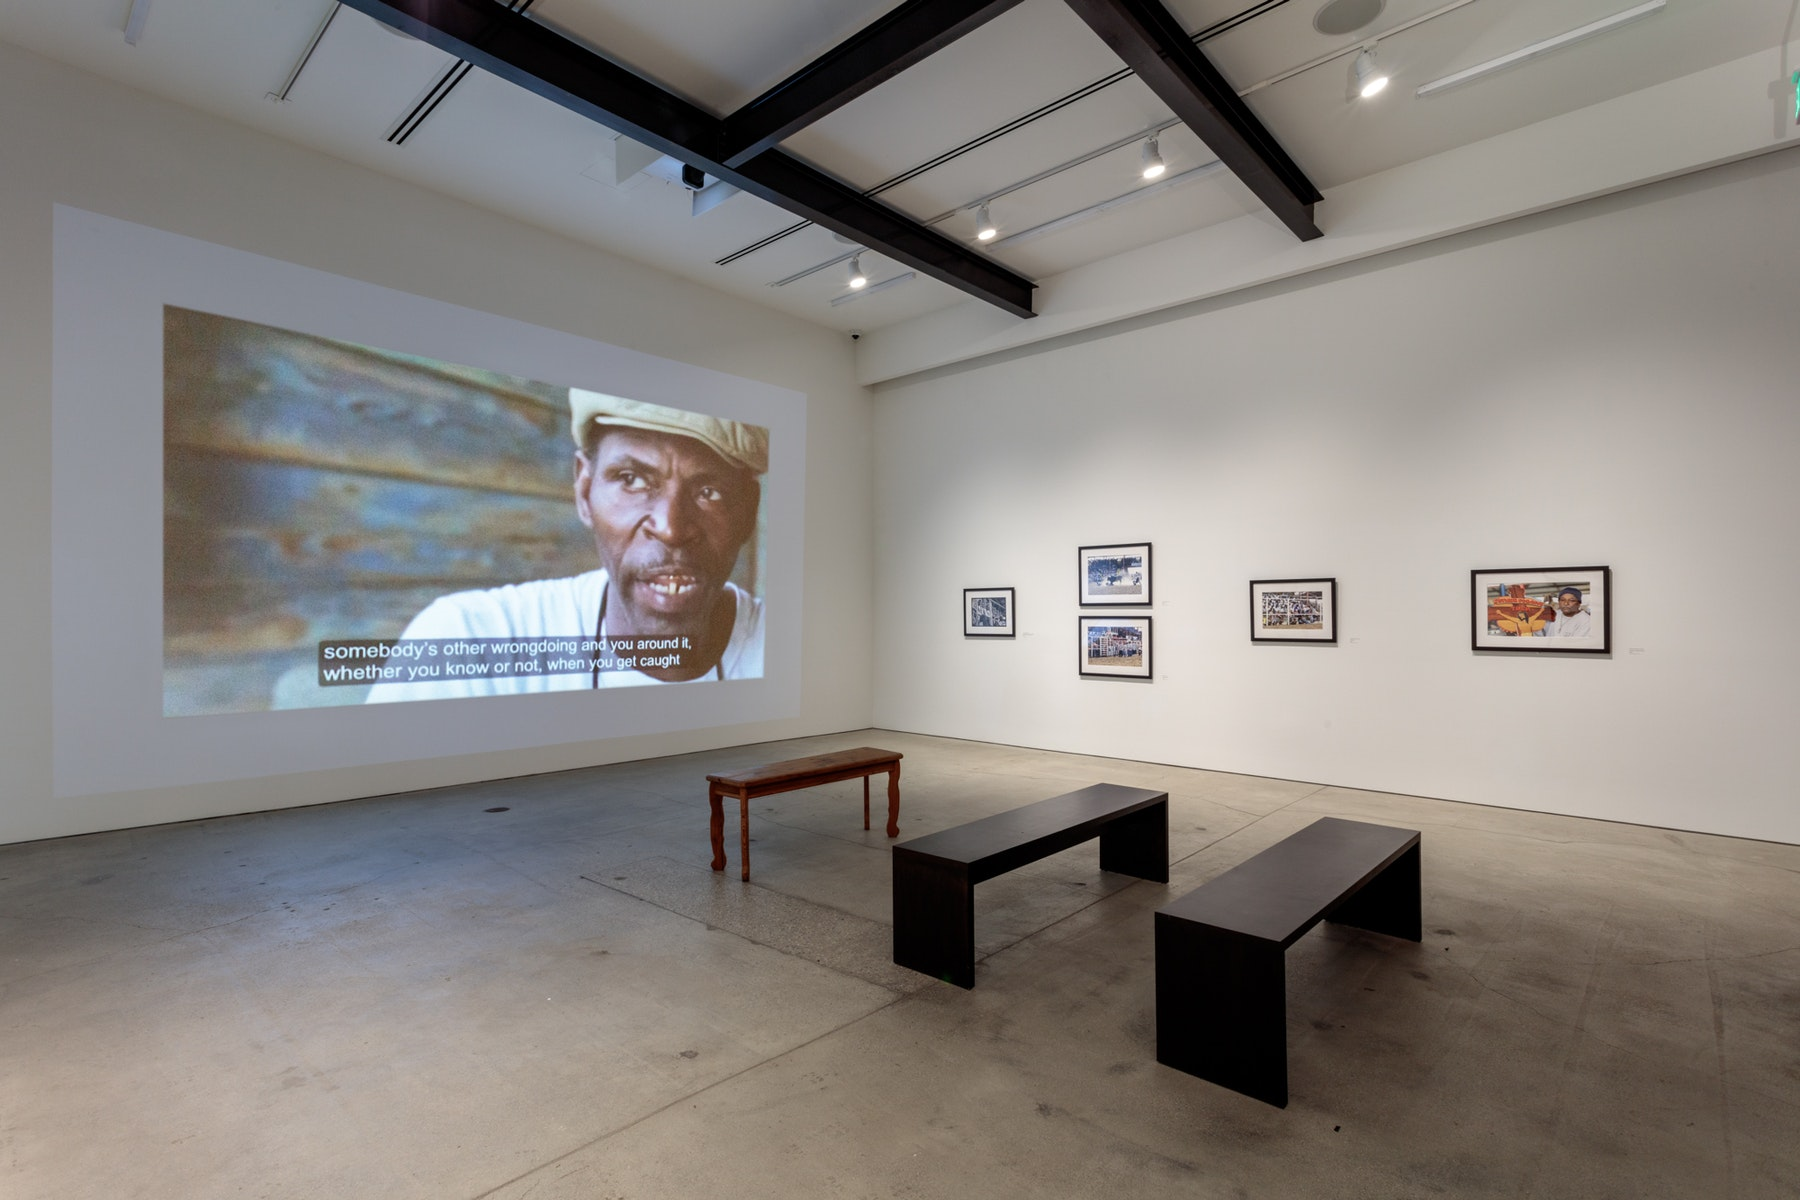 Installation view of Slavery, the Prison Industrial Complex: Photographs by Keith Calhoun and Chandra McCormick at Art + Practice. Los Angeles, California. 22 September 2018 - 5 January 2019. Photo by Joshua White.